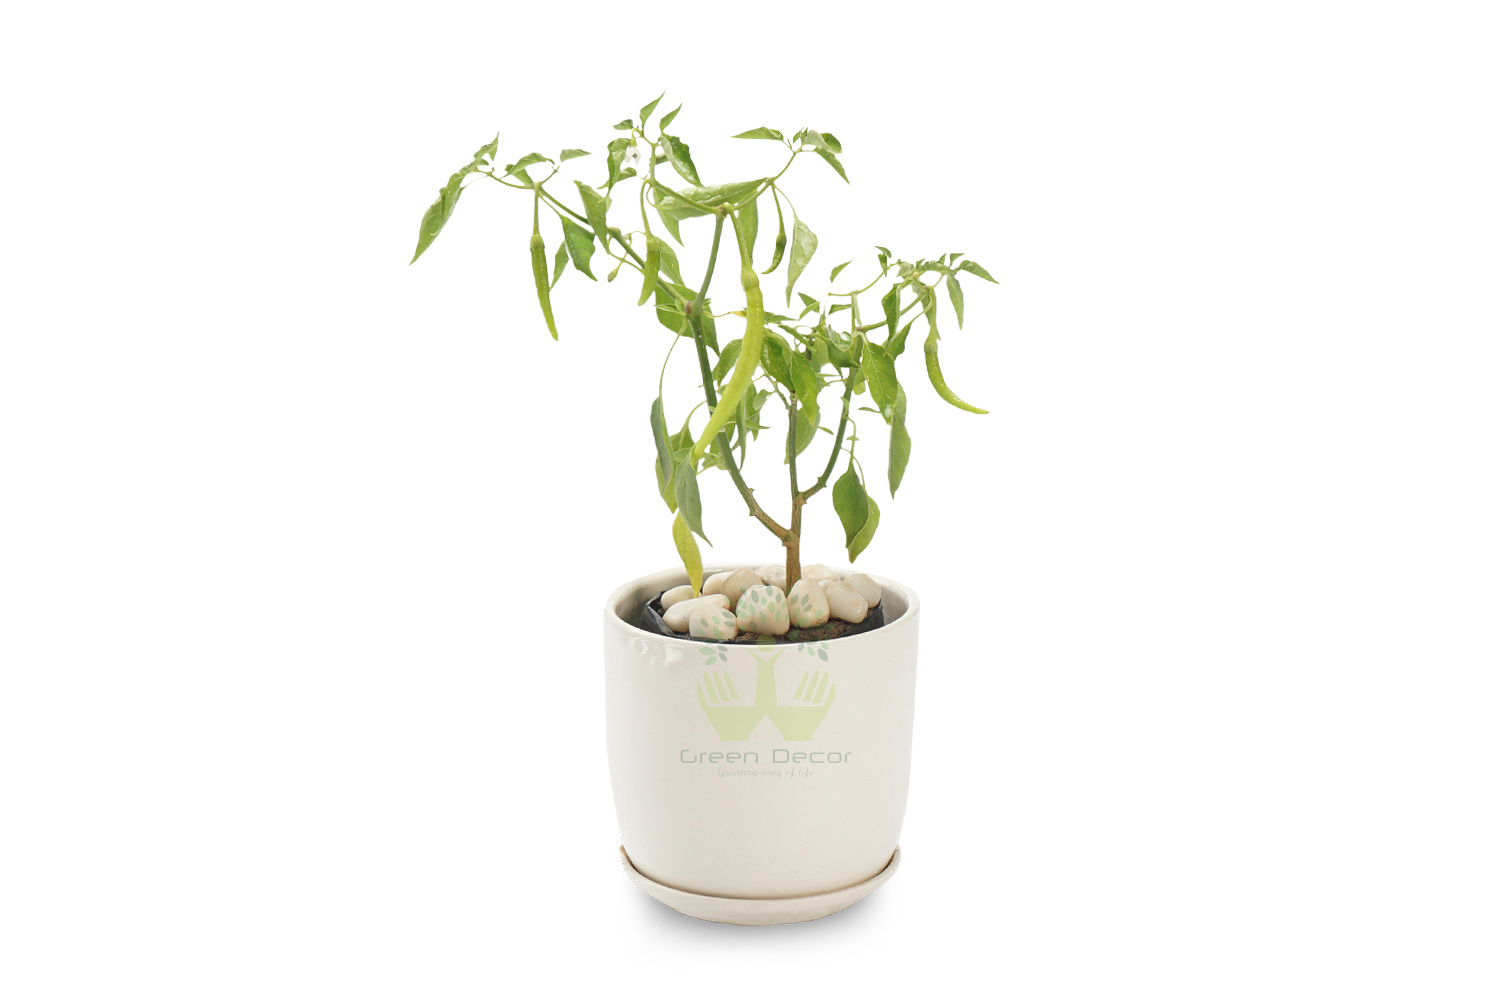 Buy Chilli Green Plants , White Pots and seeds in Delhi NCR by the best online nursery shop Greendecor.